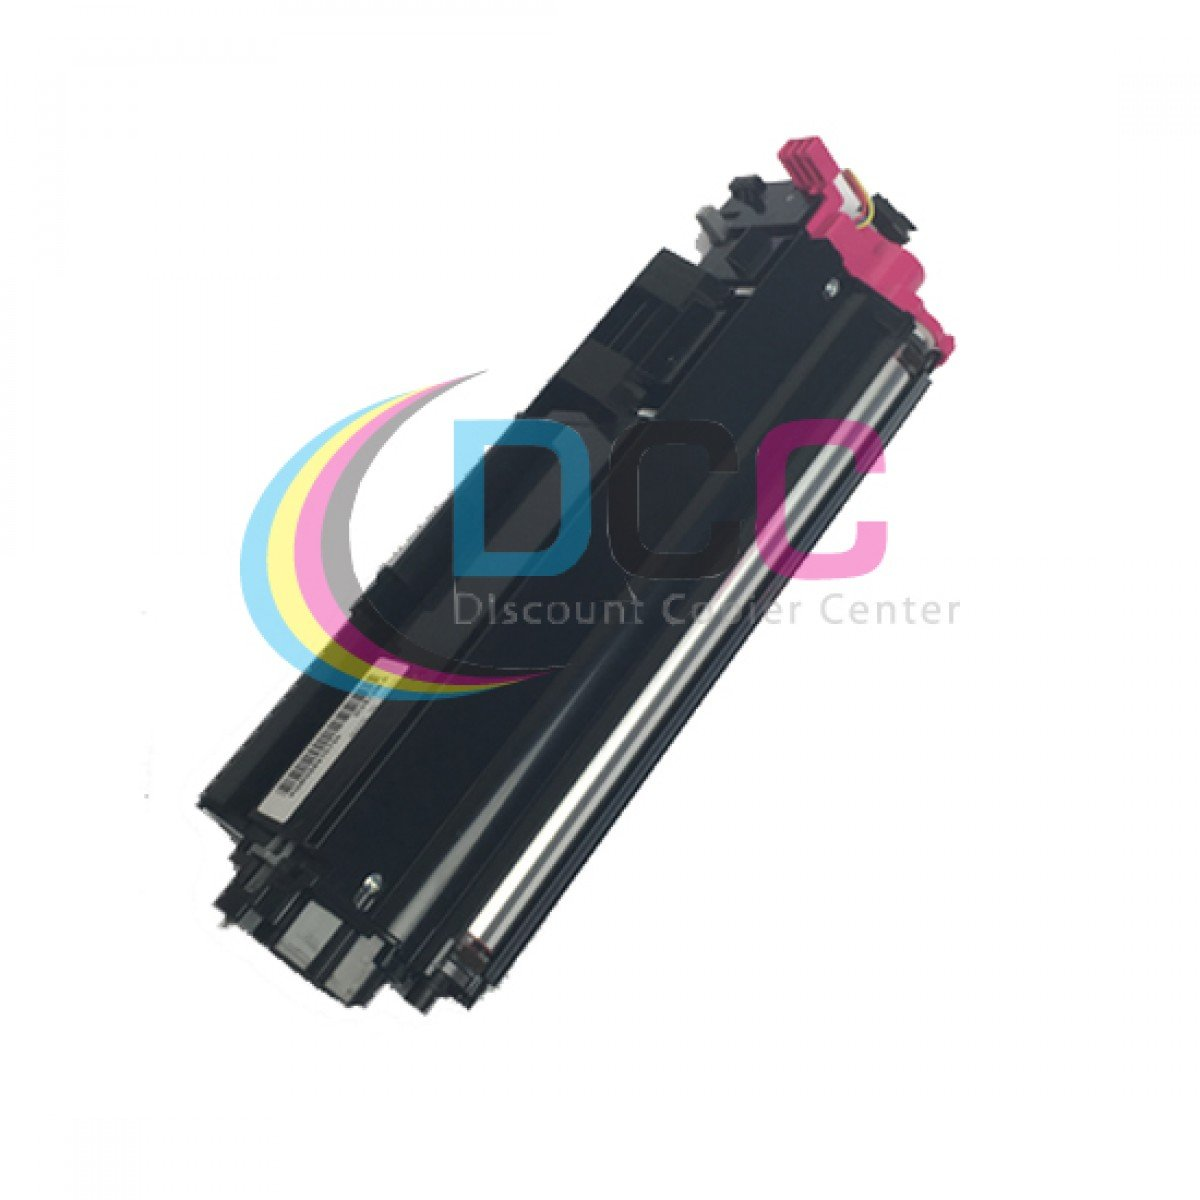 KYOCERA DV-512M Magenta Developer Unit For FSC5030N 302F393142 by Kyocera